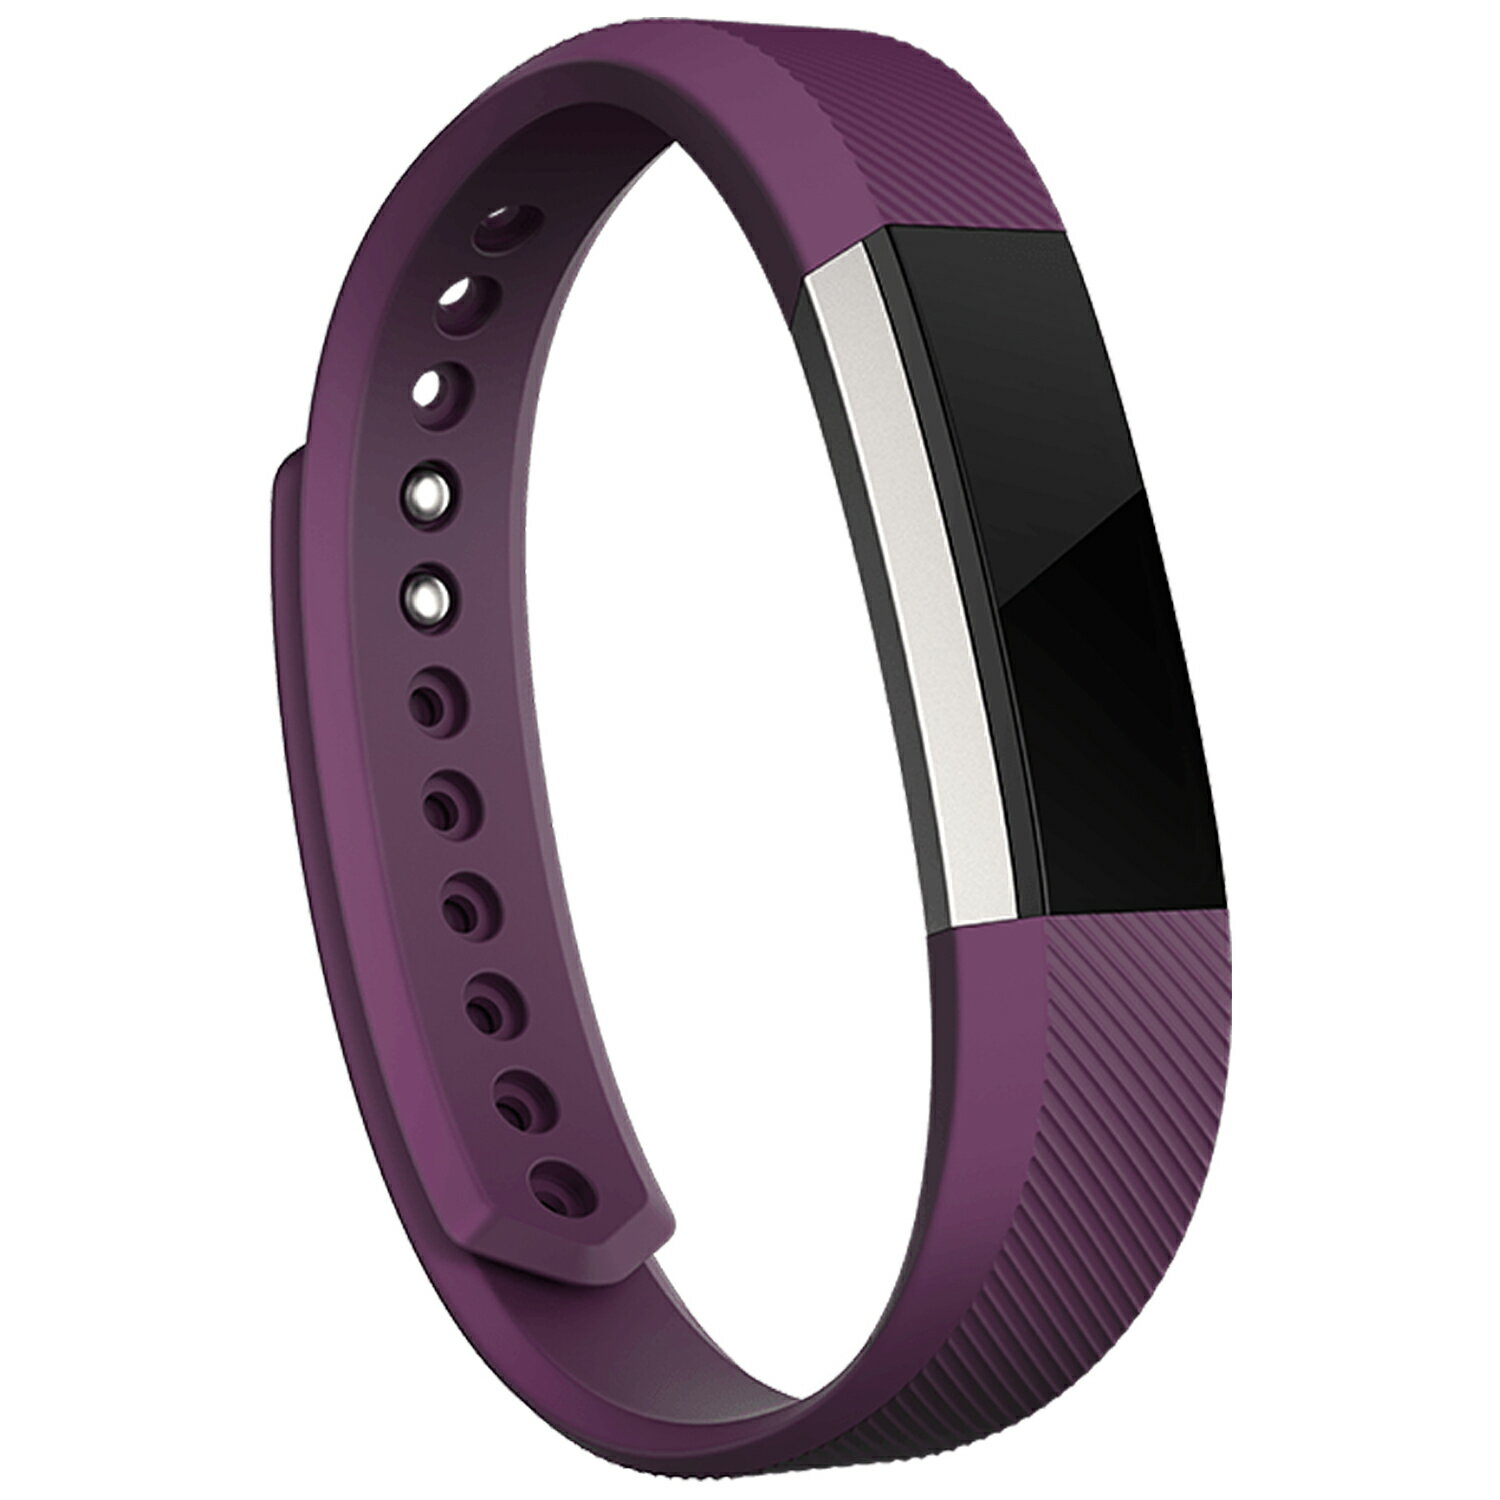 Fitbit Alta Wireless Activity Fitness Tracker and Sleep Monitor Wristband - Plum - Large 1